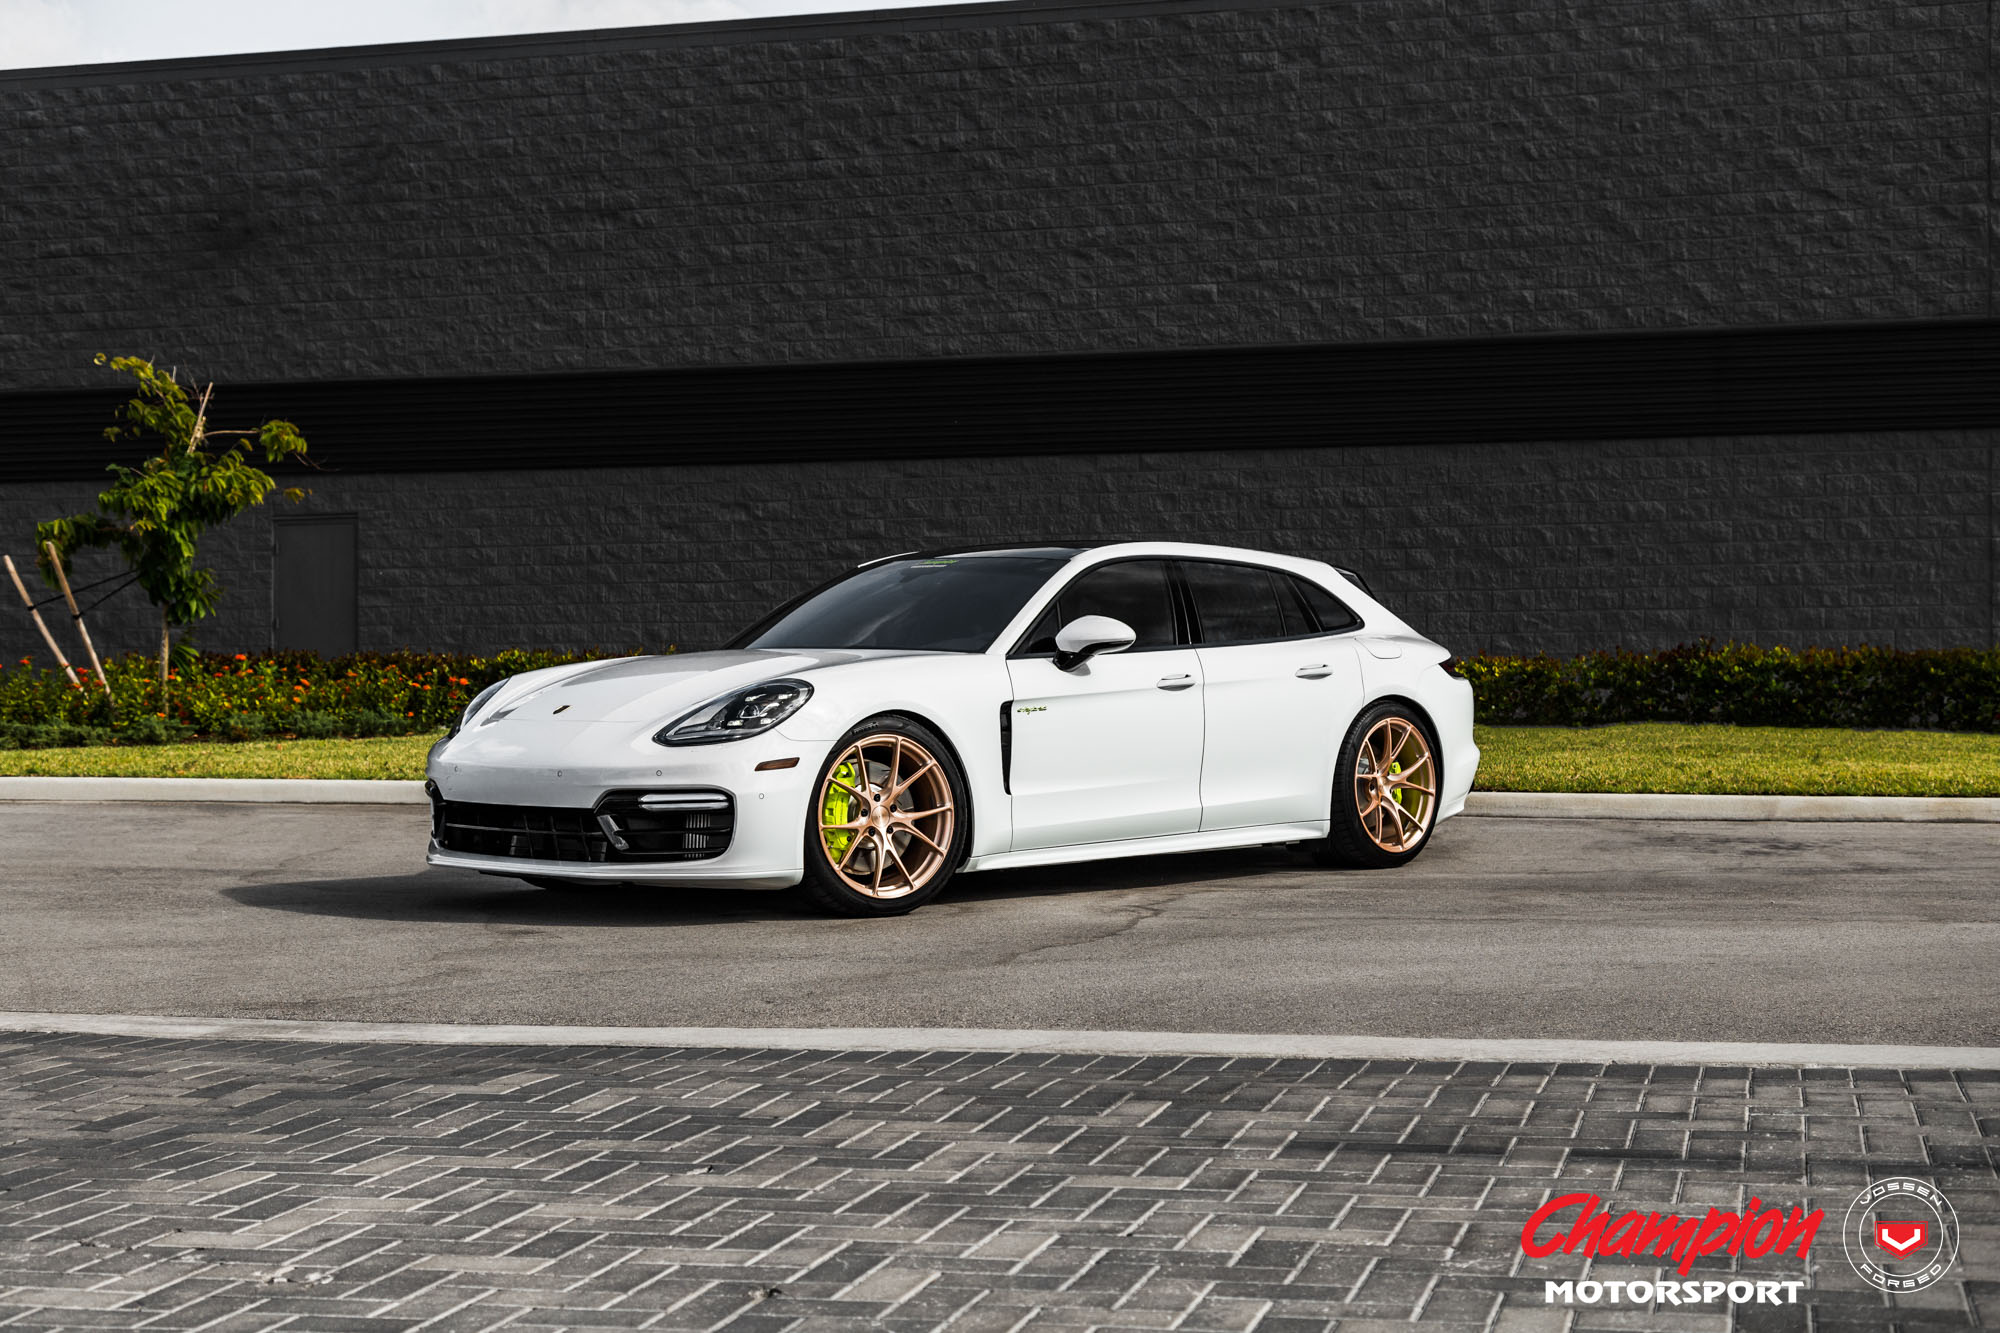 How To Clean Vomit From Car >> Rapper YG Gets His Porsche Panamera Ready for Dub Magazine - autoevolution